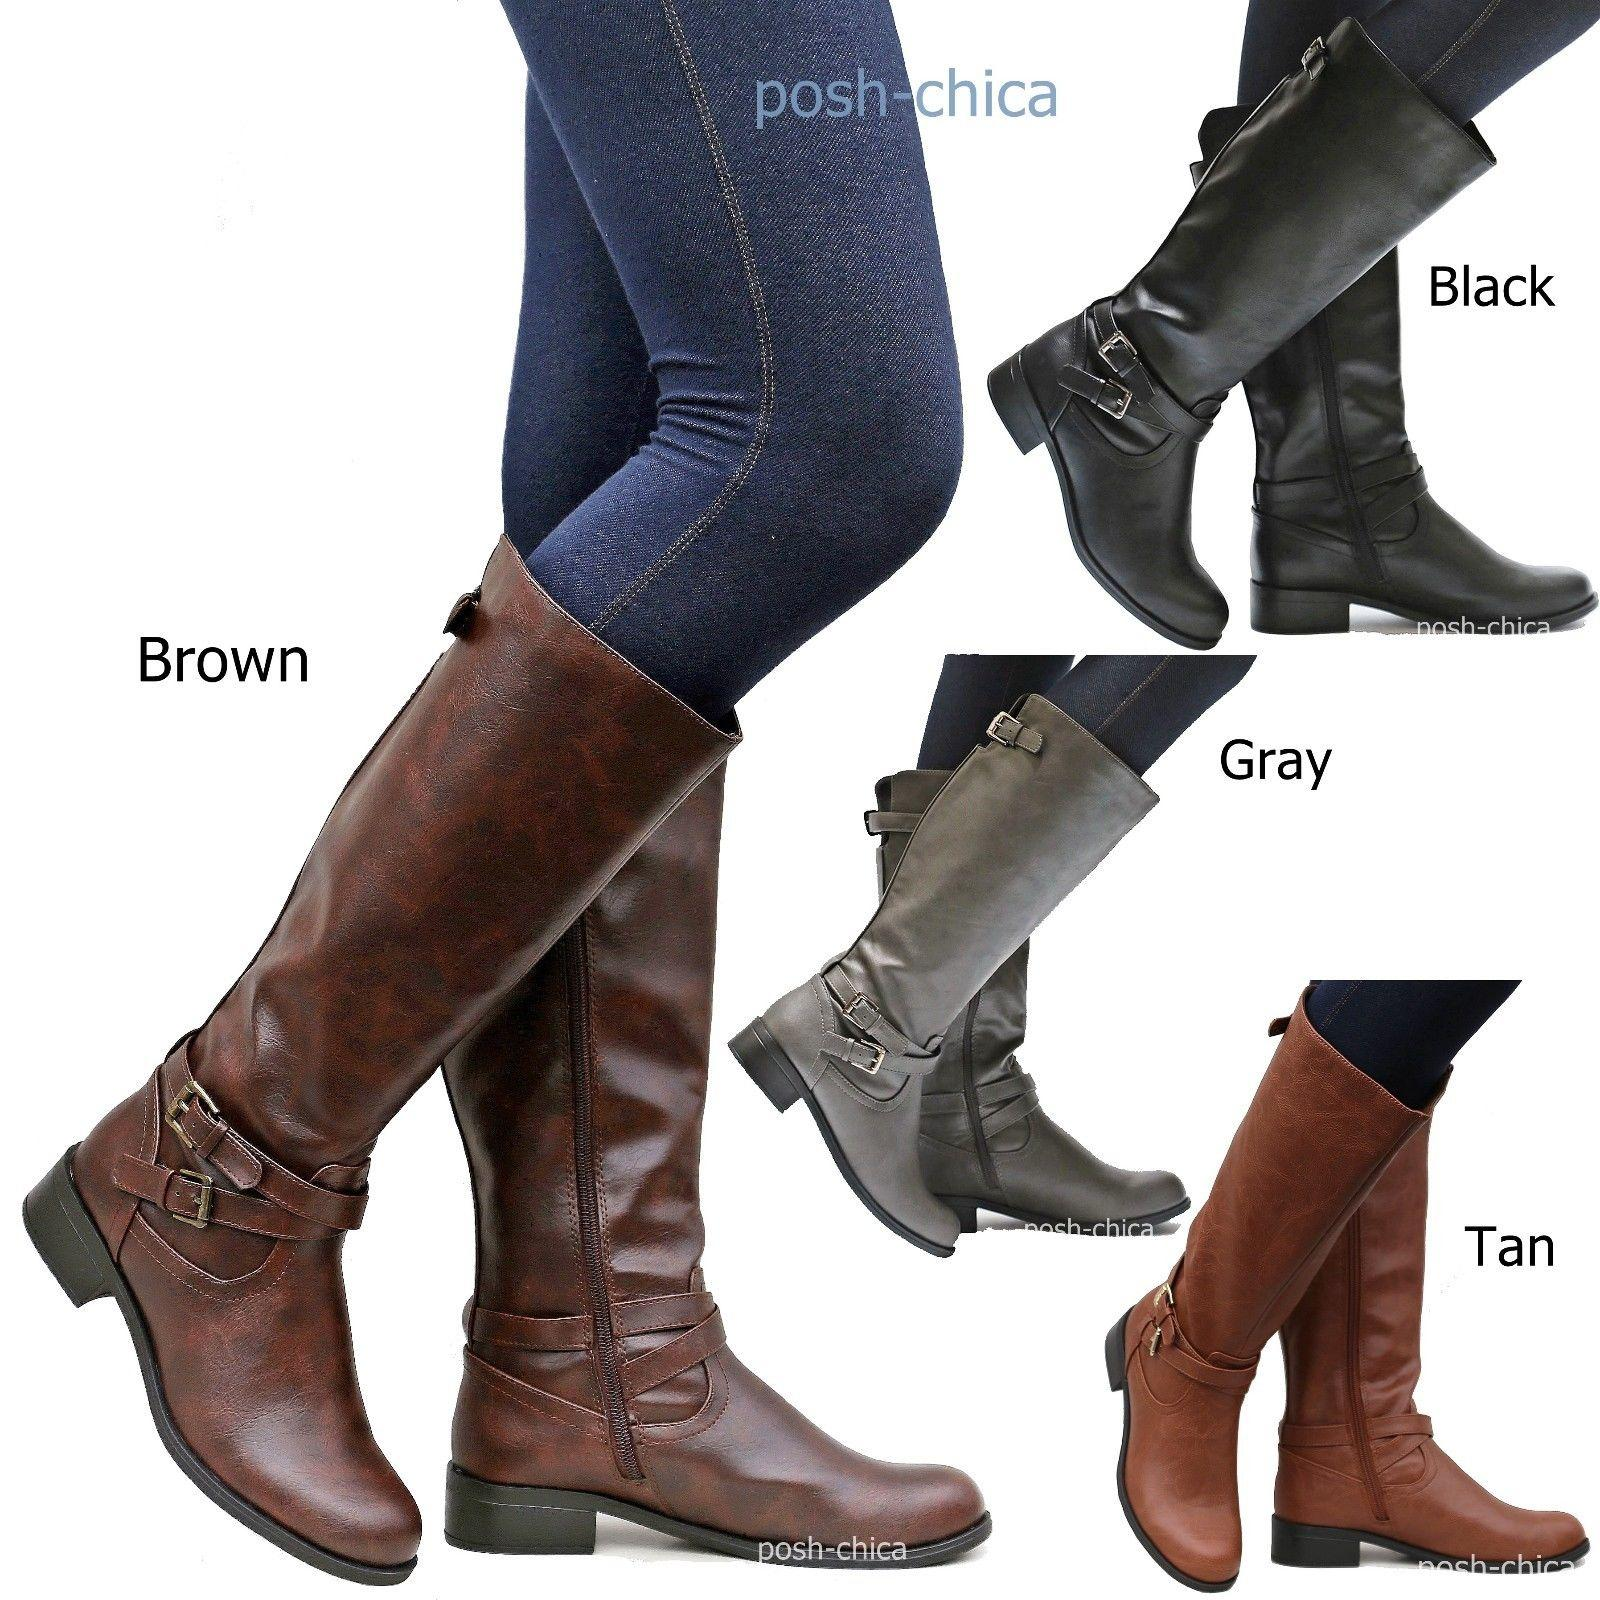 New Women SBioTan Black Gray Brown Buckle Riding Knee High Boots size 5.5  to 10 0494bcf4fe